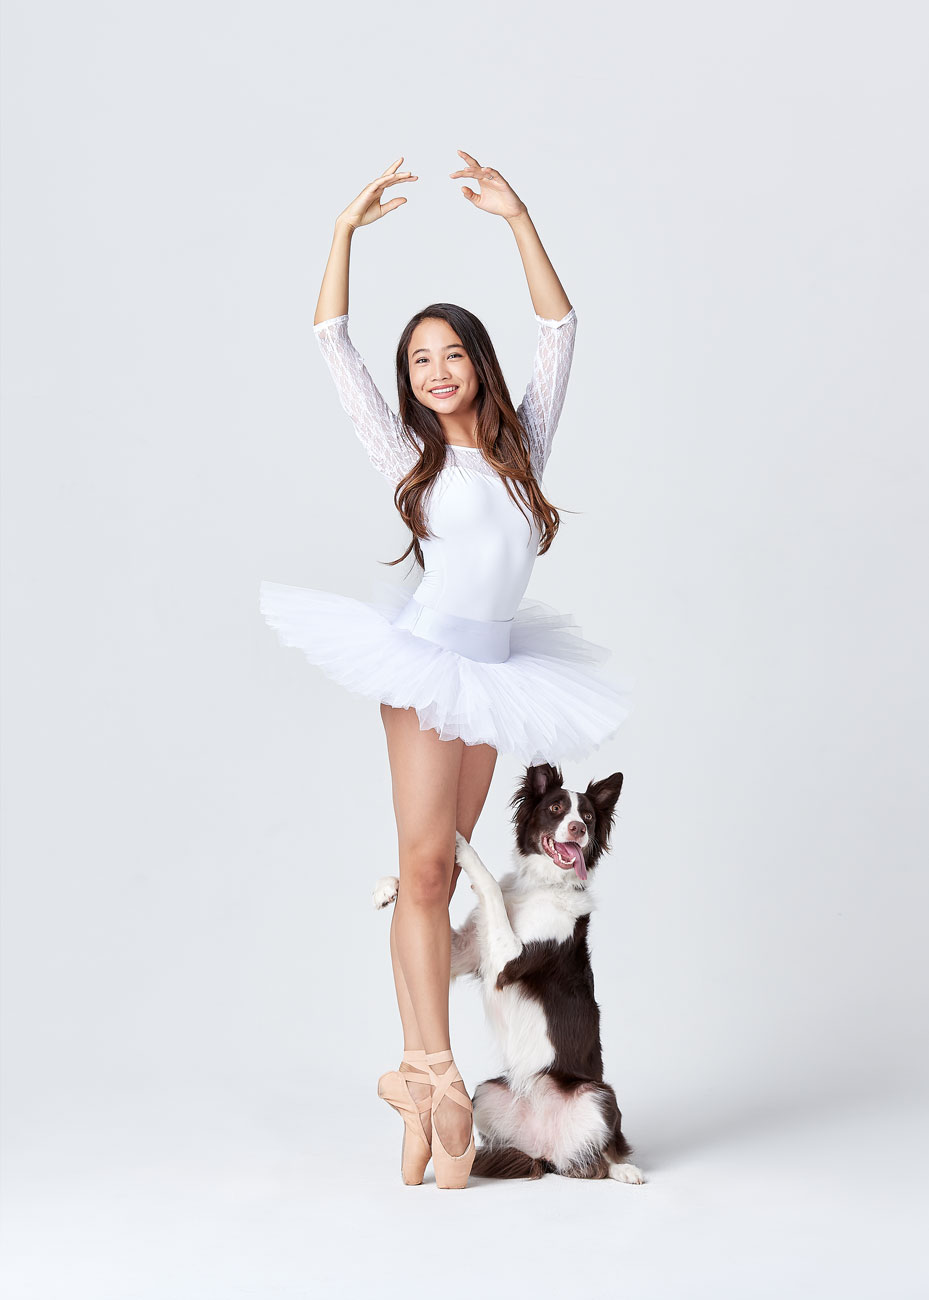 Dancers_and_Dogs_12